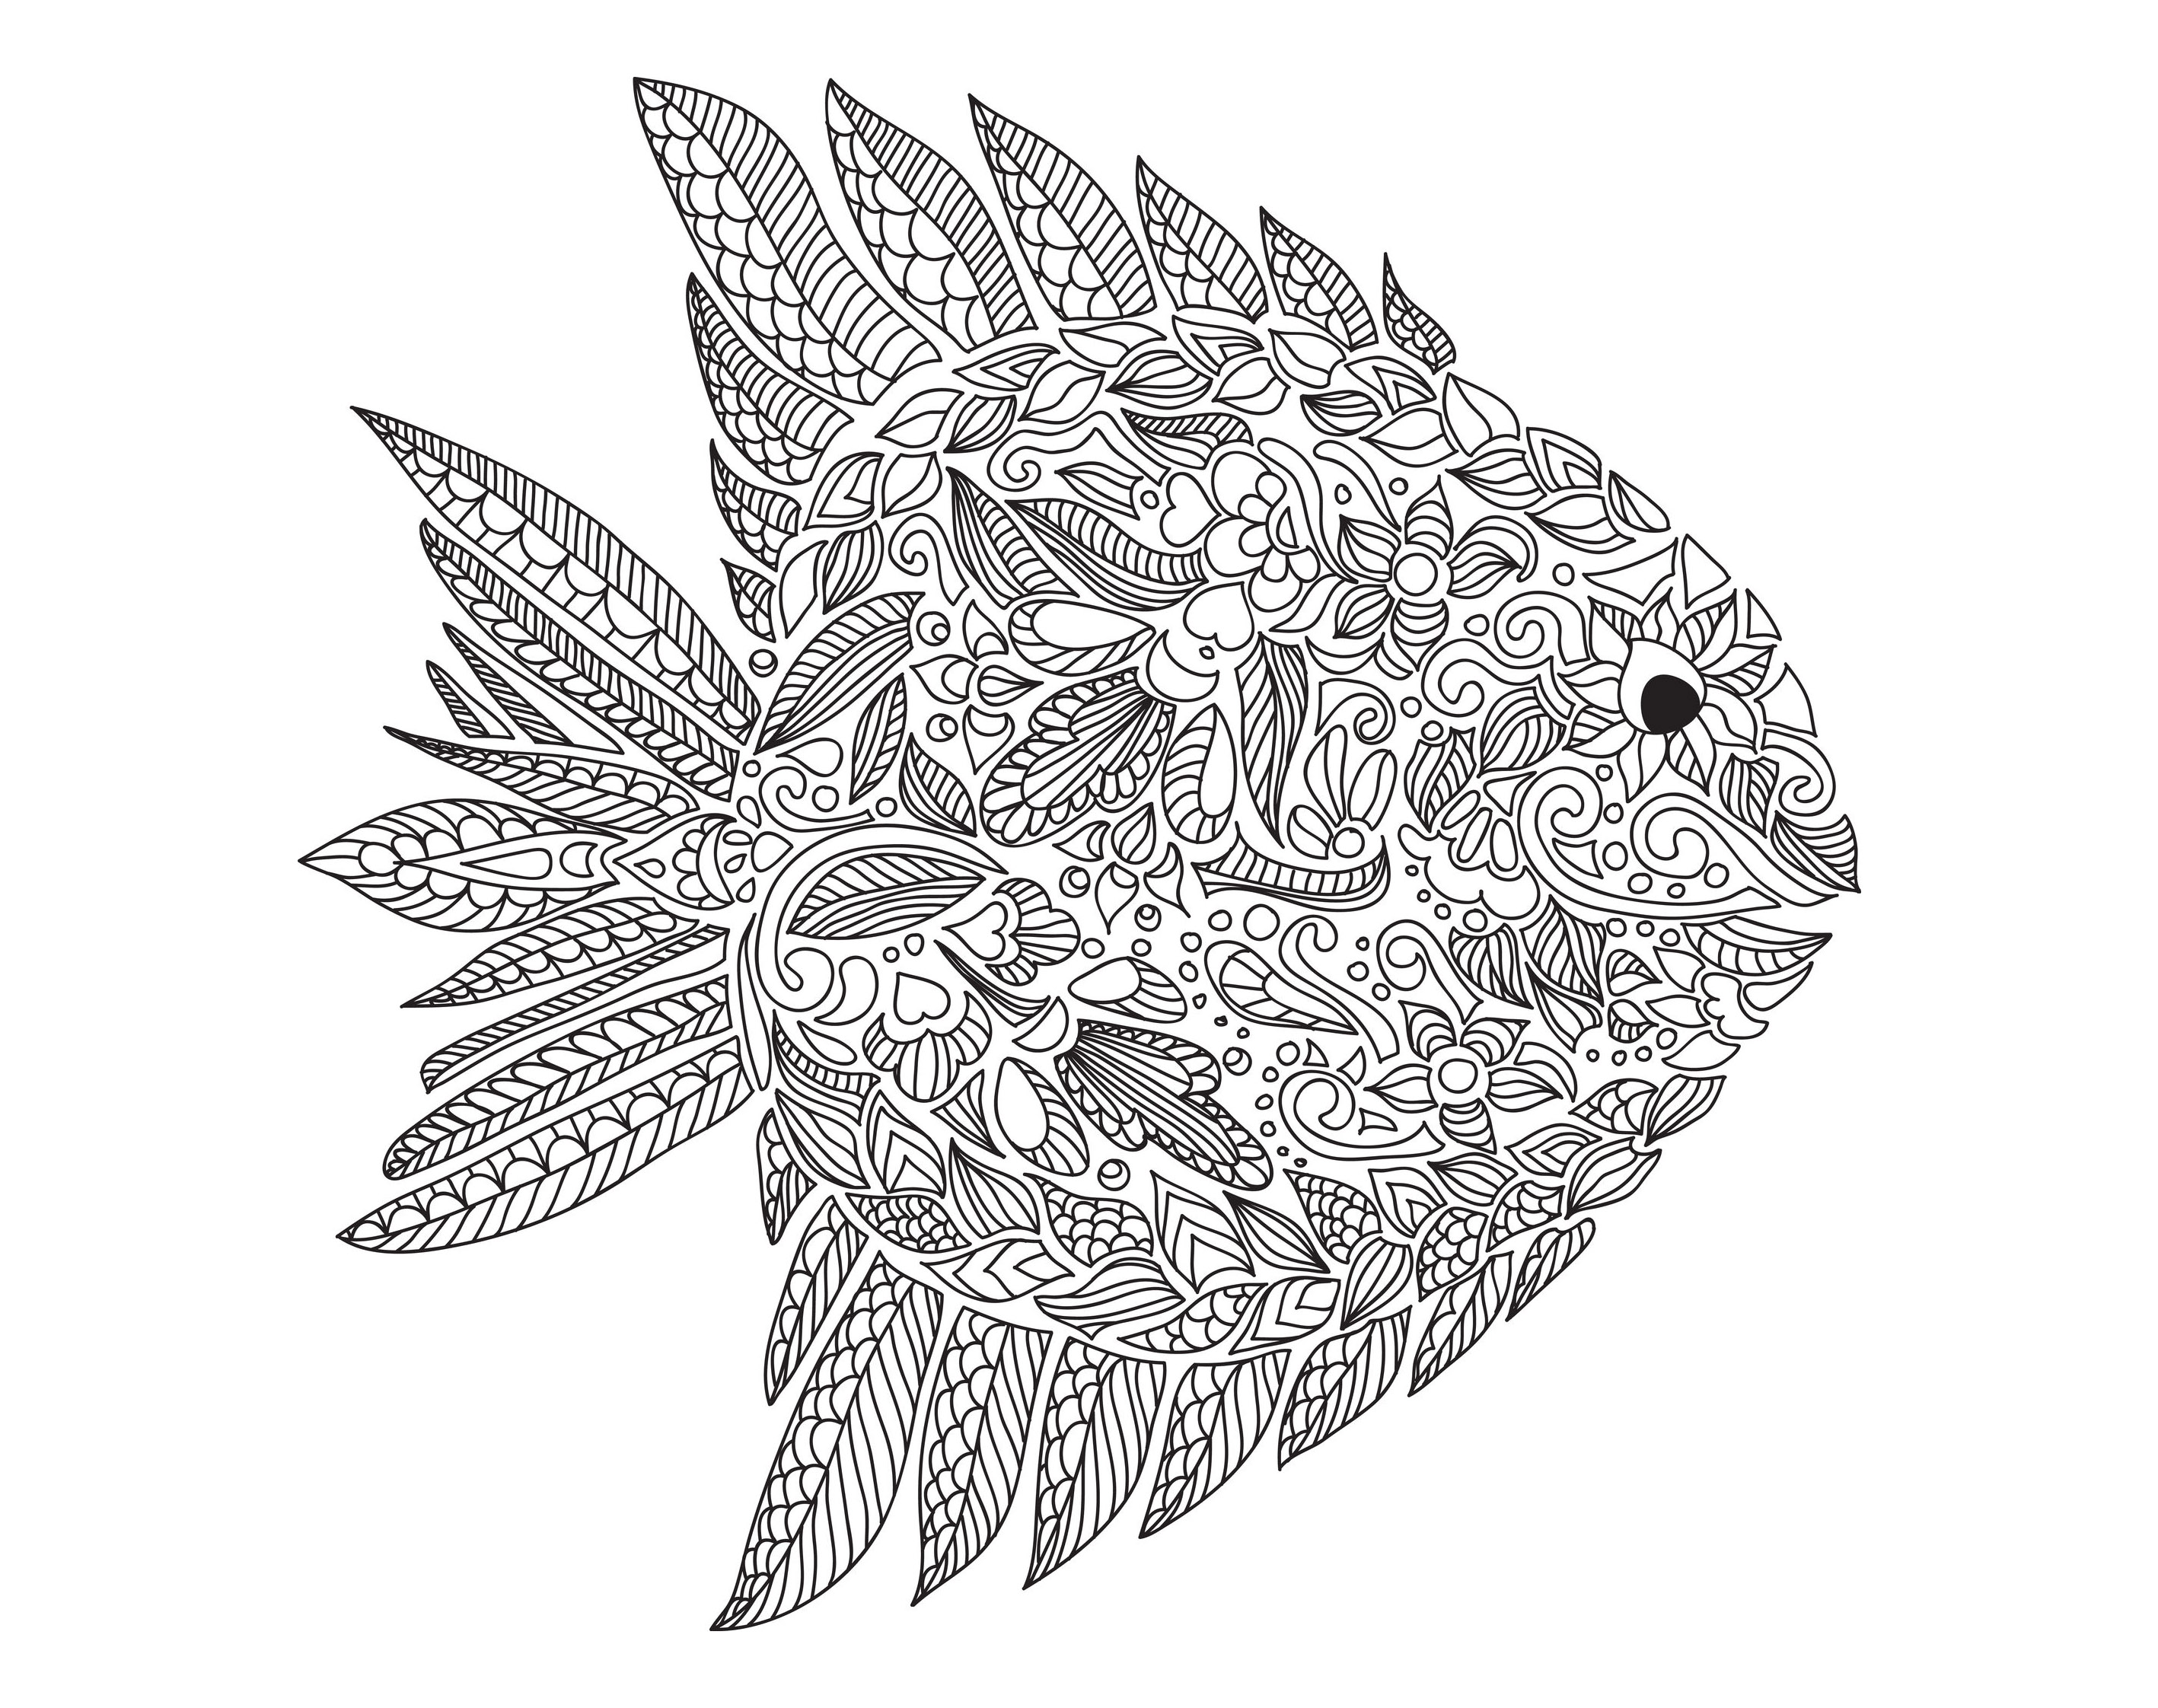 Zentangle Fish By Artnataliia Water Worlds Coloring Pages For